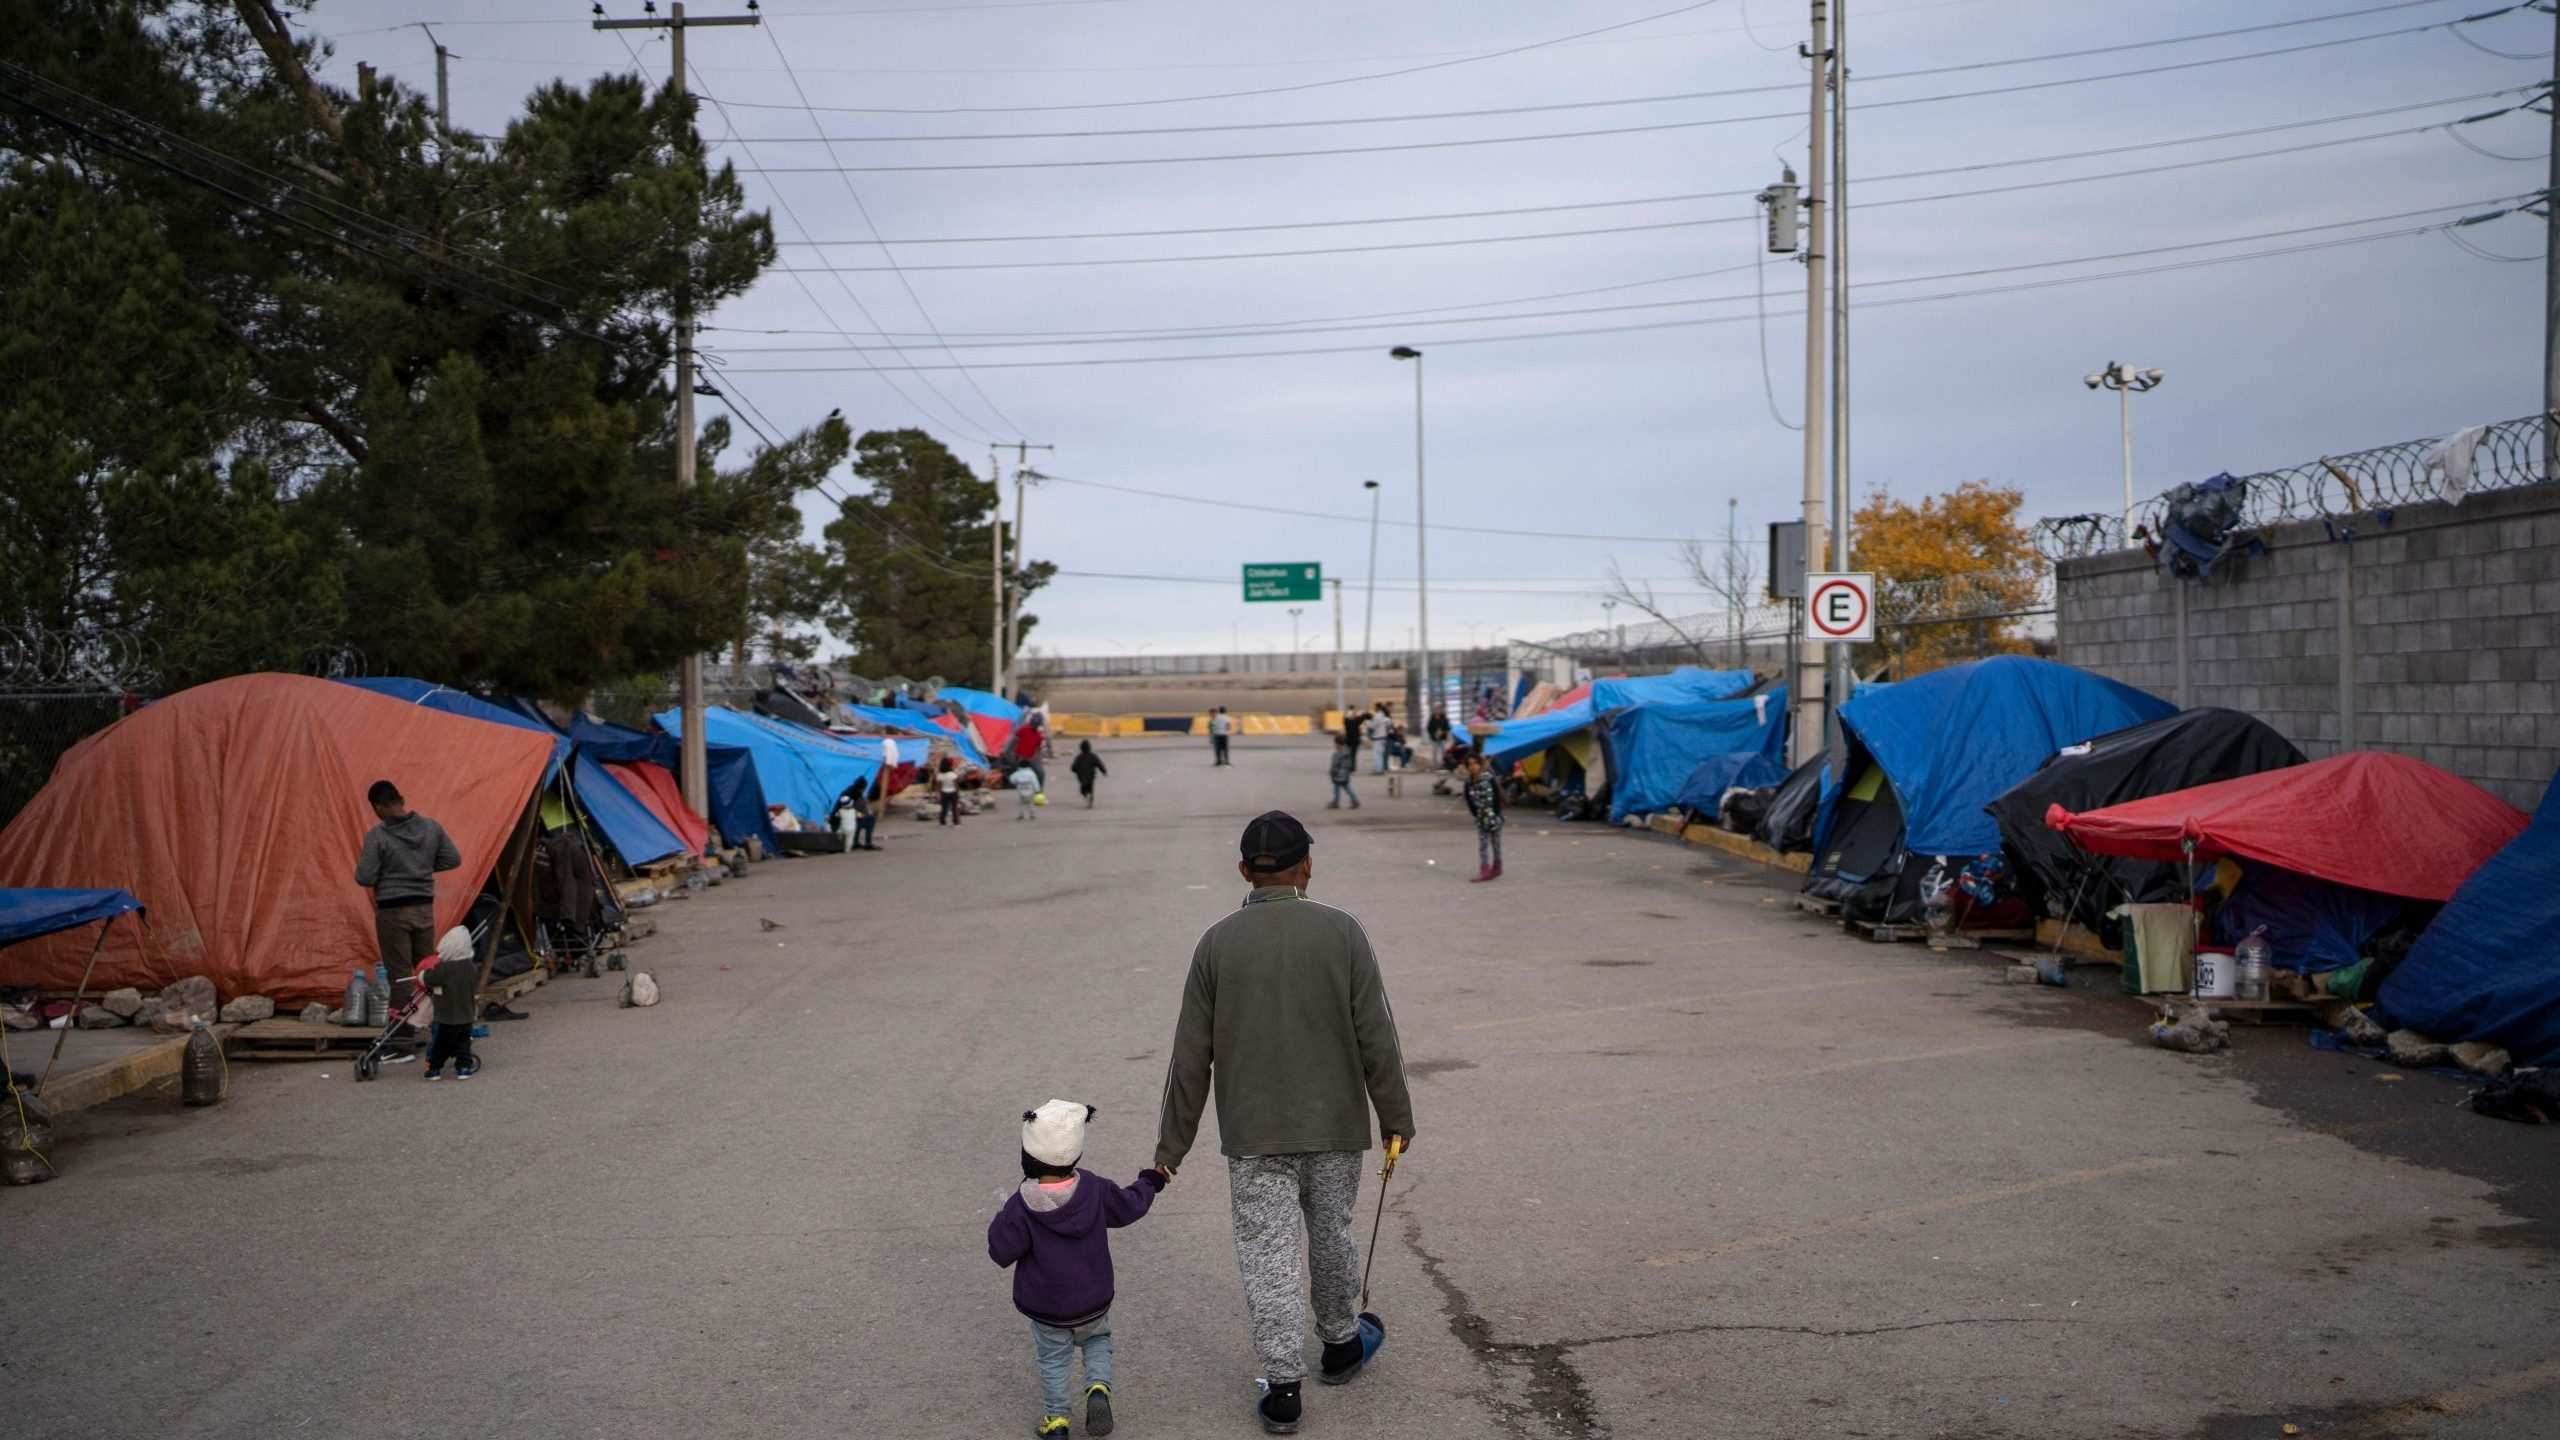 A man walks with his daughter at an asylum seekers camp near the Zaragoza bridge in Ciudad Juarez, Mexico, on Dec. 11, 2019. (Paul Ratje / AFP / Getty Images)